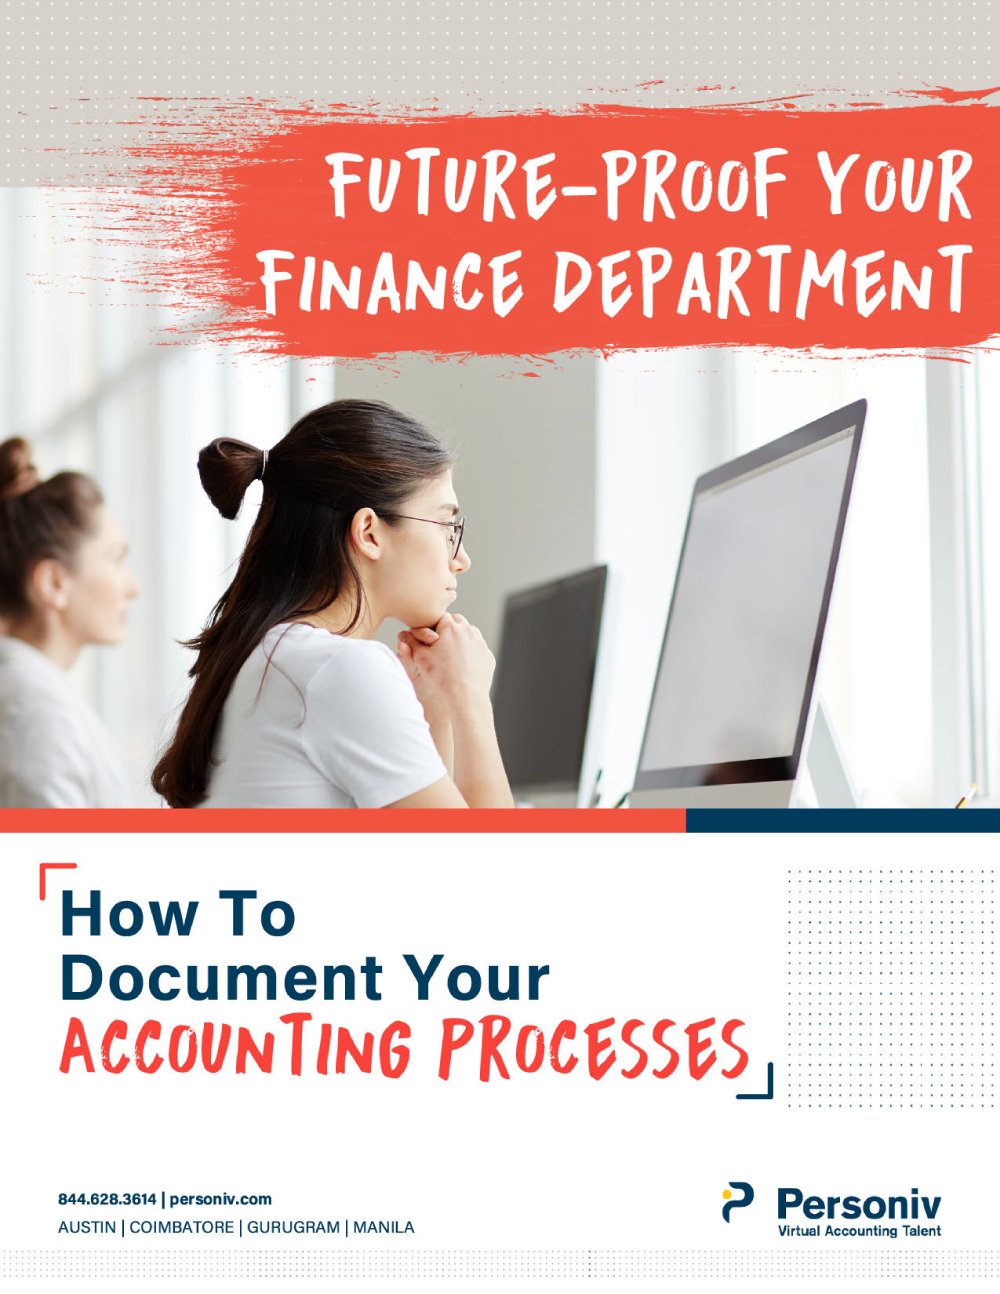 Future-Proof Your Finance Department: How To Document Your Processes